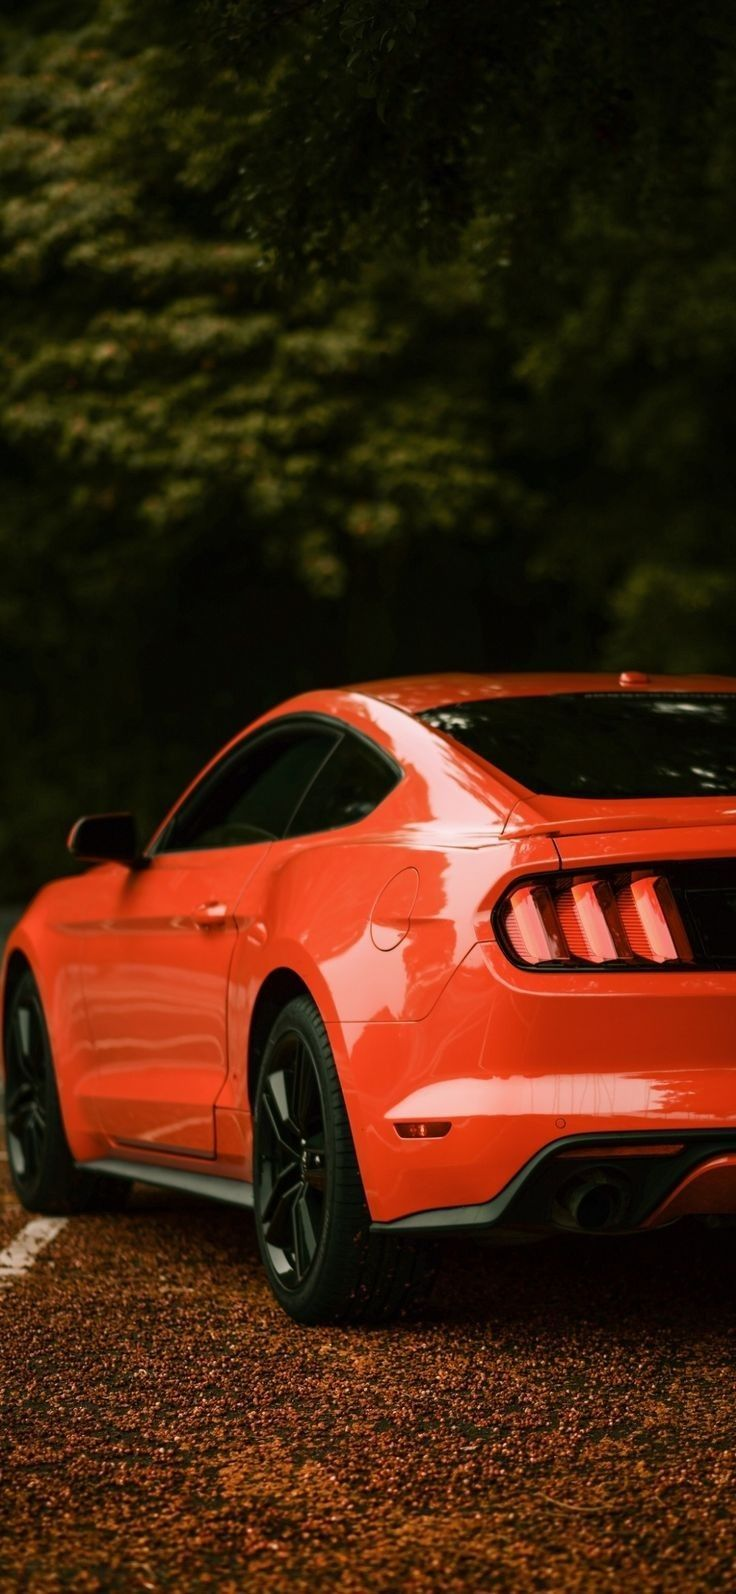 Pin By Mario Gotz On Carros Luxury Car Photos Ford Mustang Ford Mustang Wallpaper